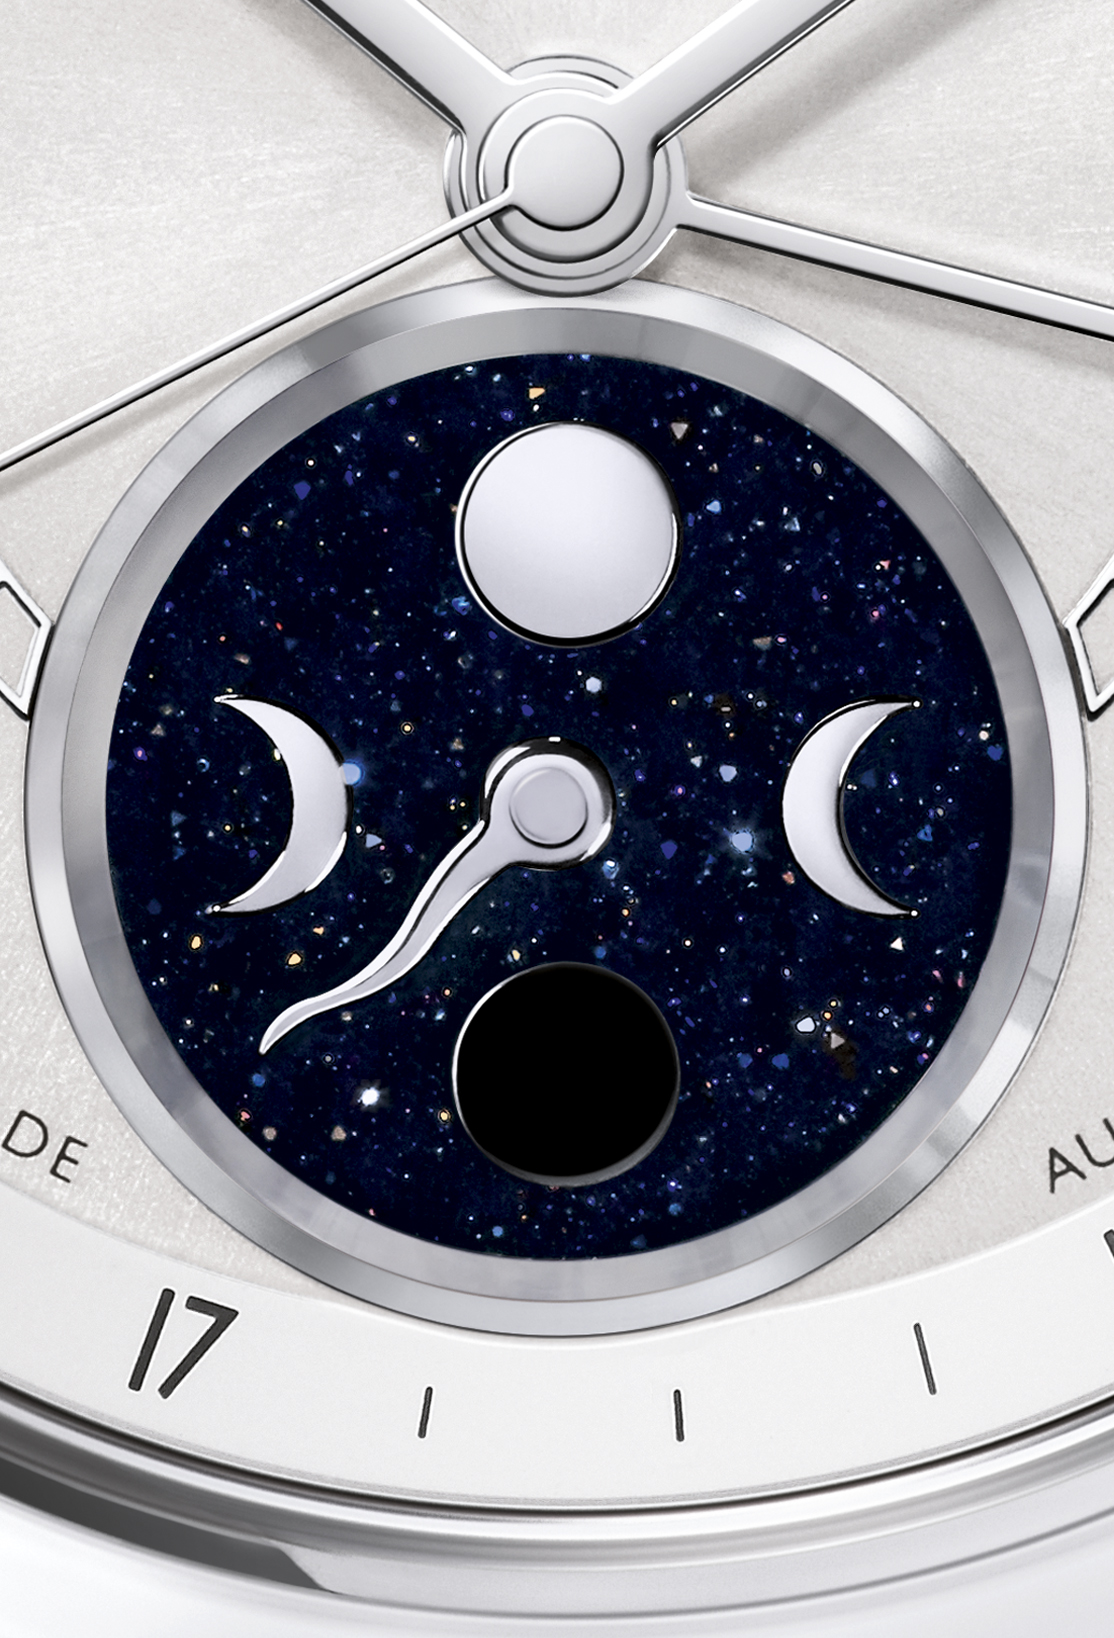 Moonphase counter W